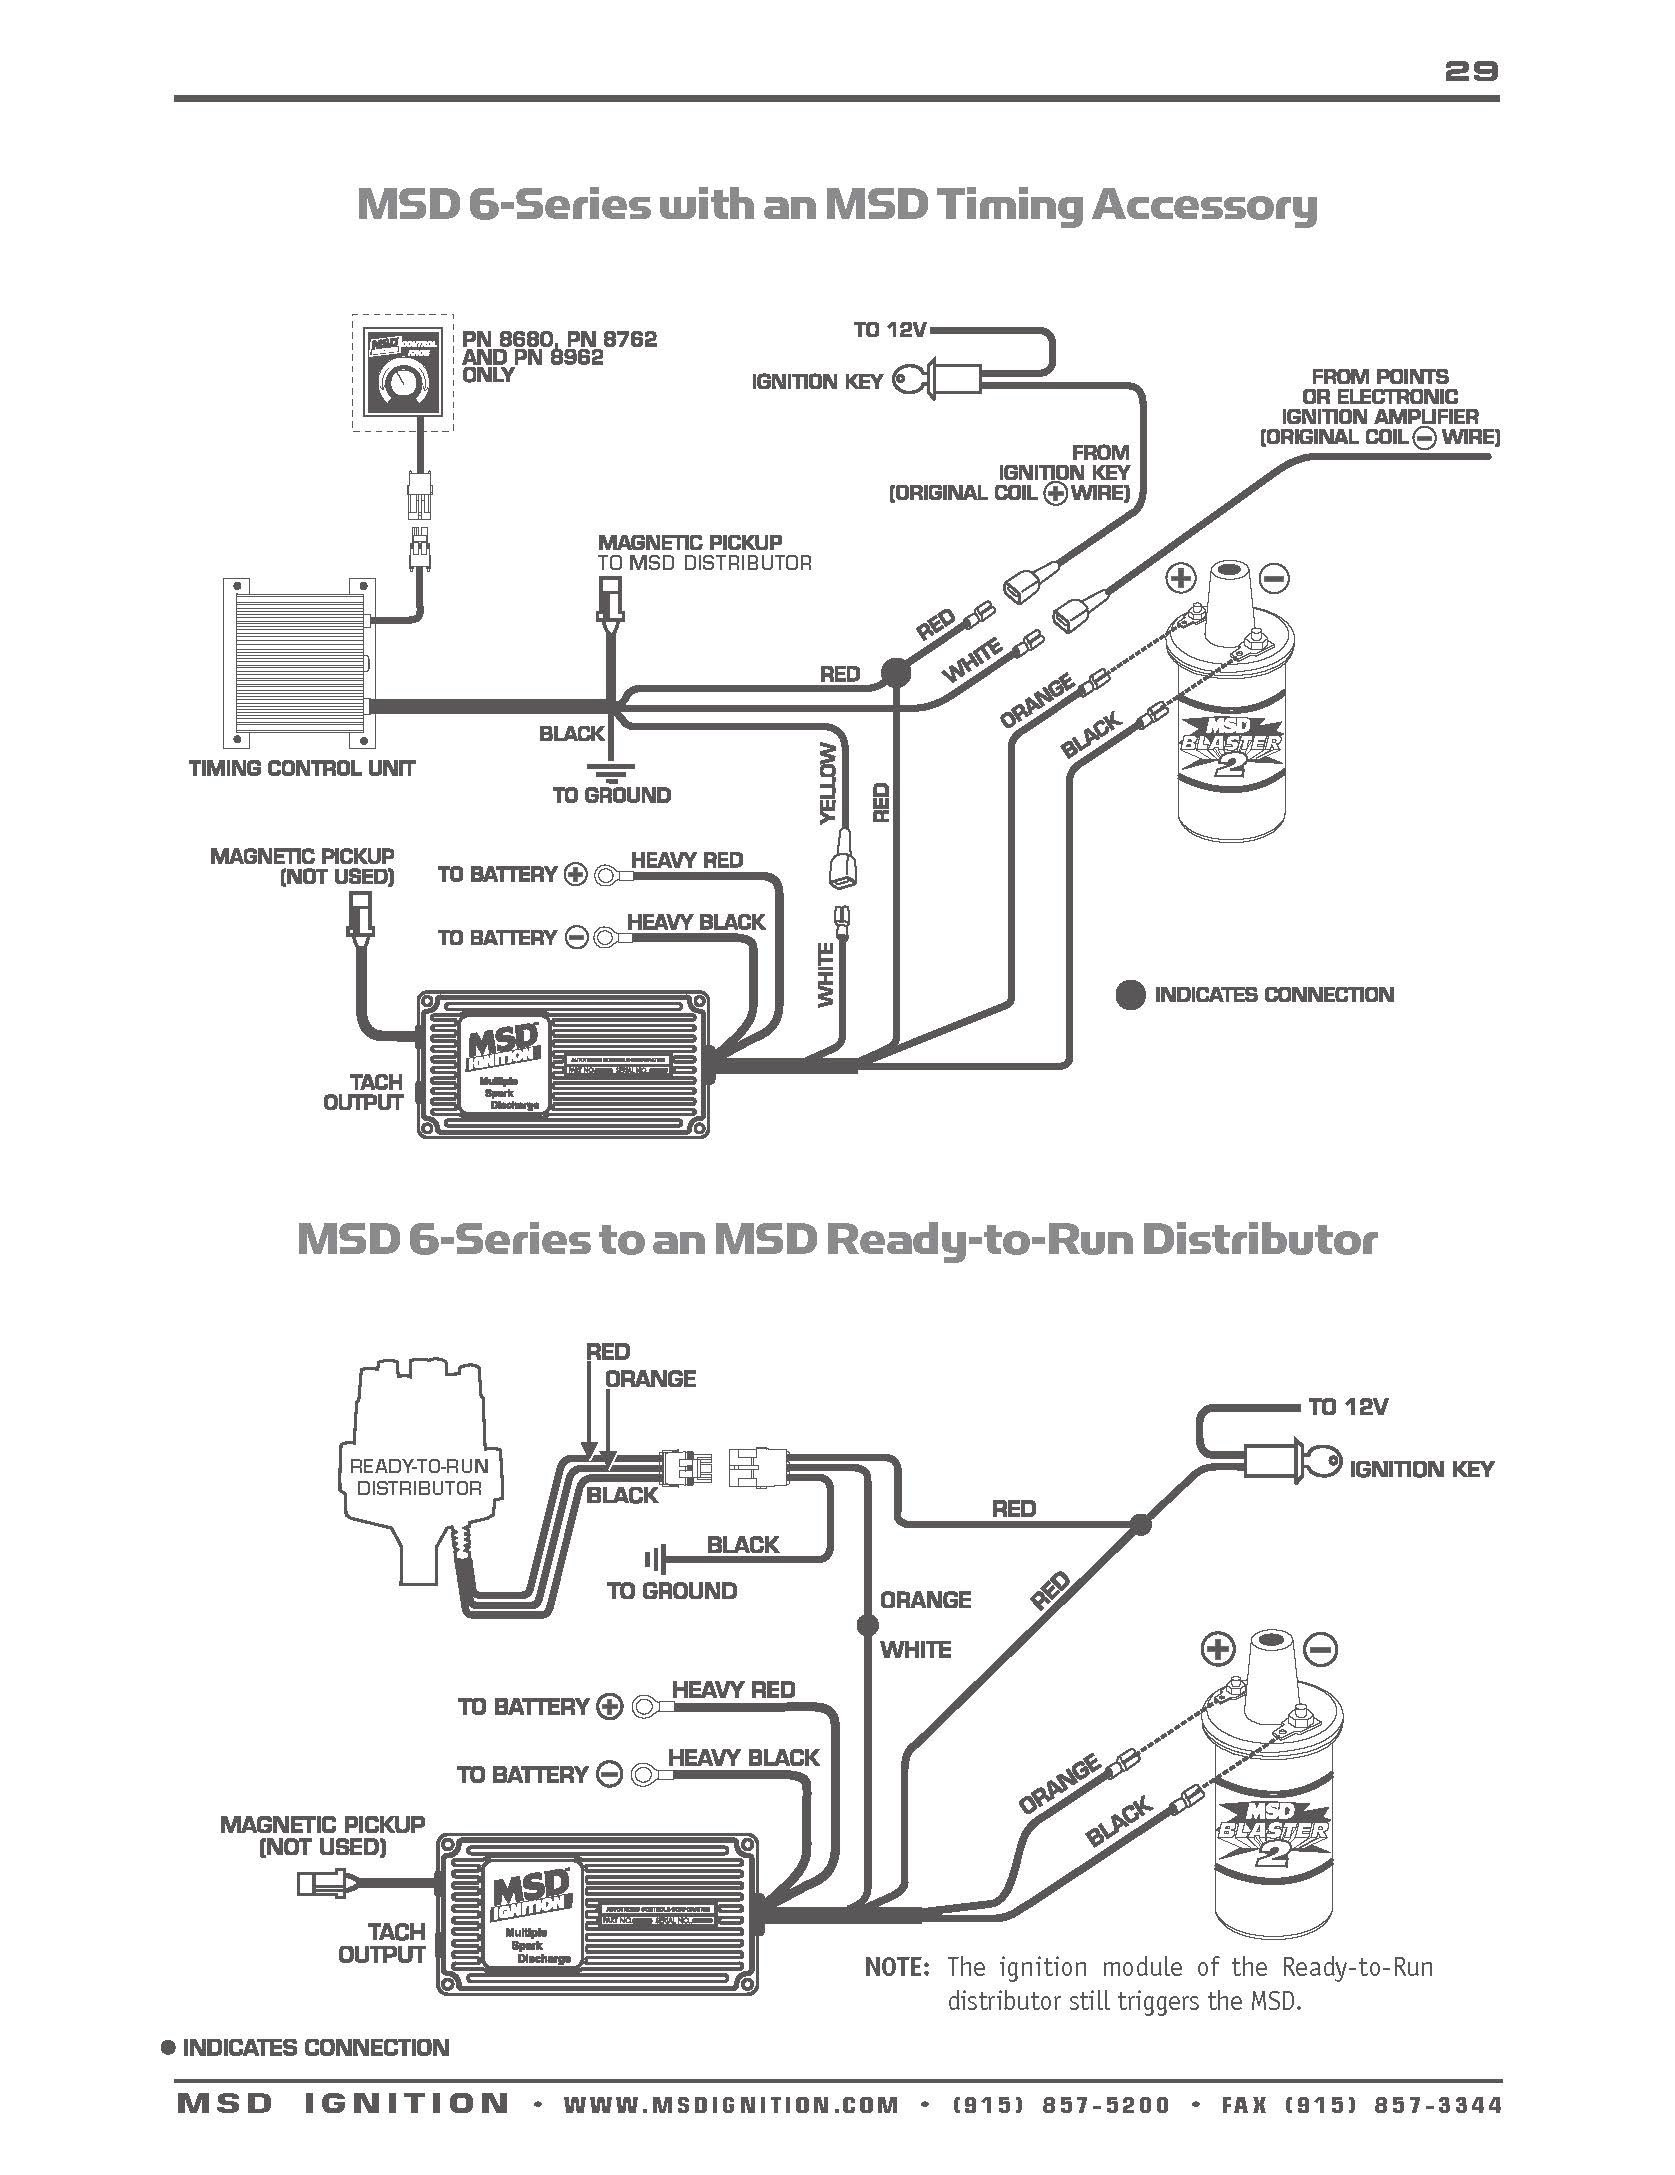 Jacobs Electronics Wiring Diagram | Wiring Schematic Diagram on